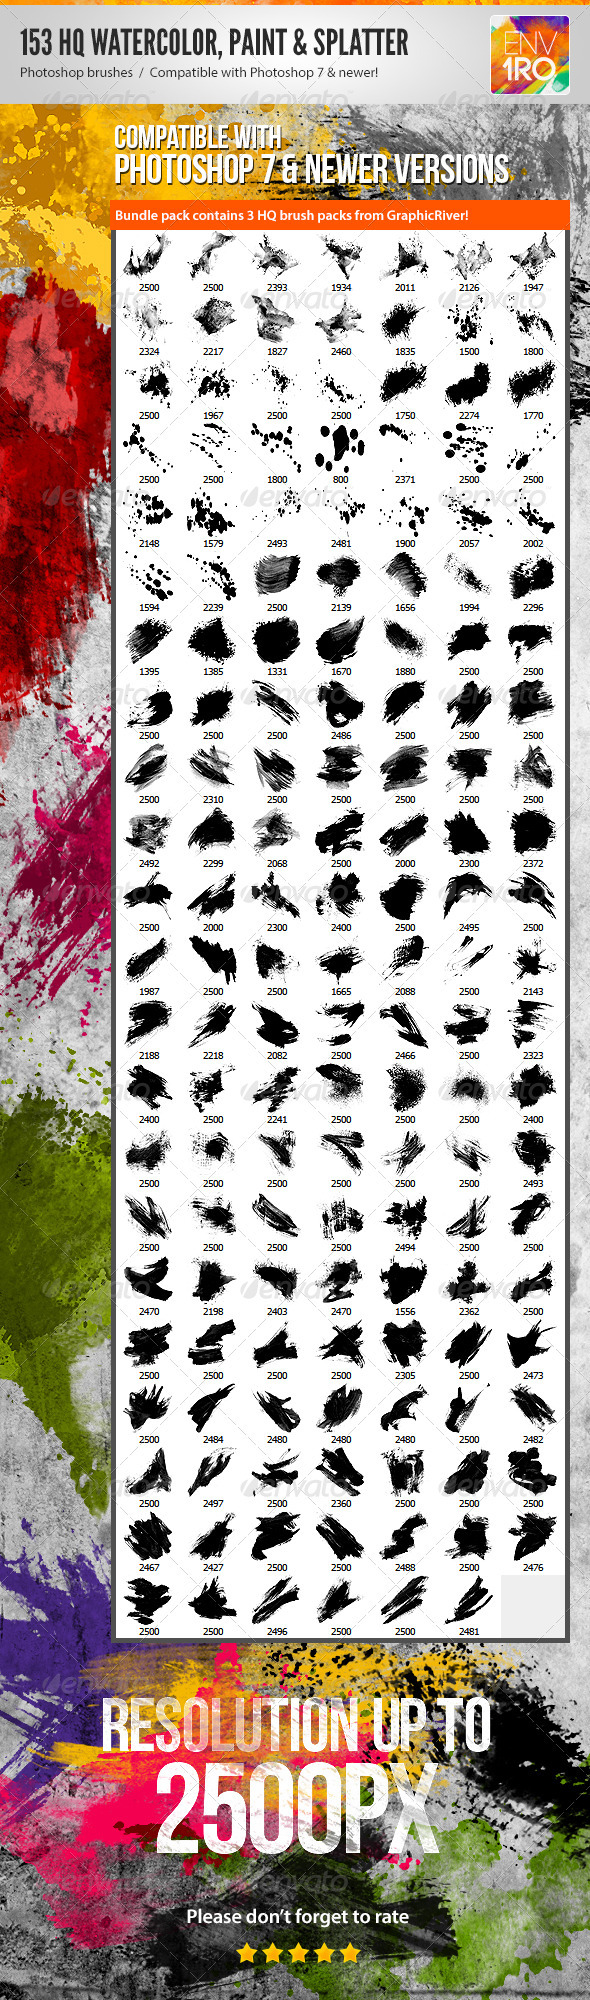 153 Watercolor Paint & Splatter Photoshop Brushes - Artistic Brushes